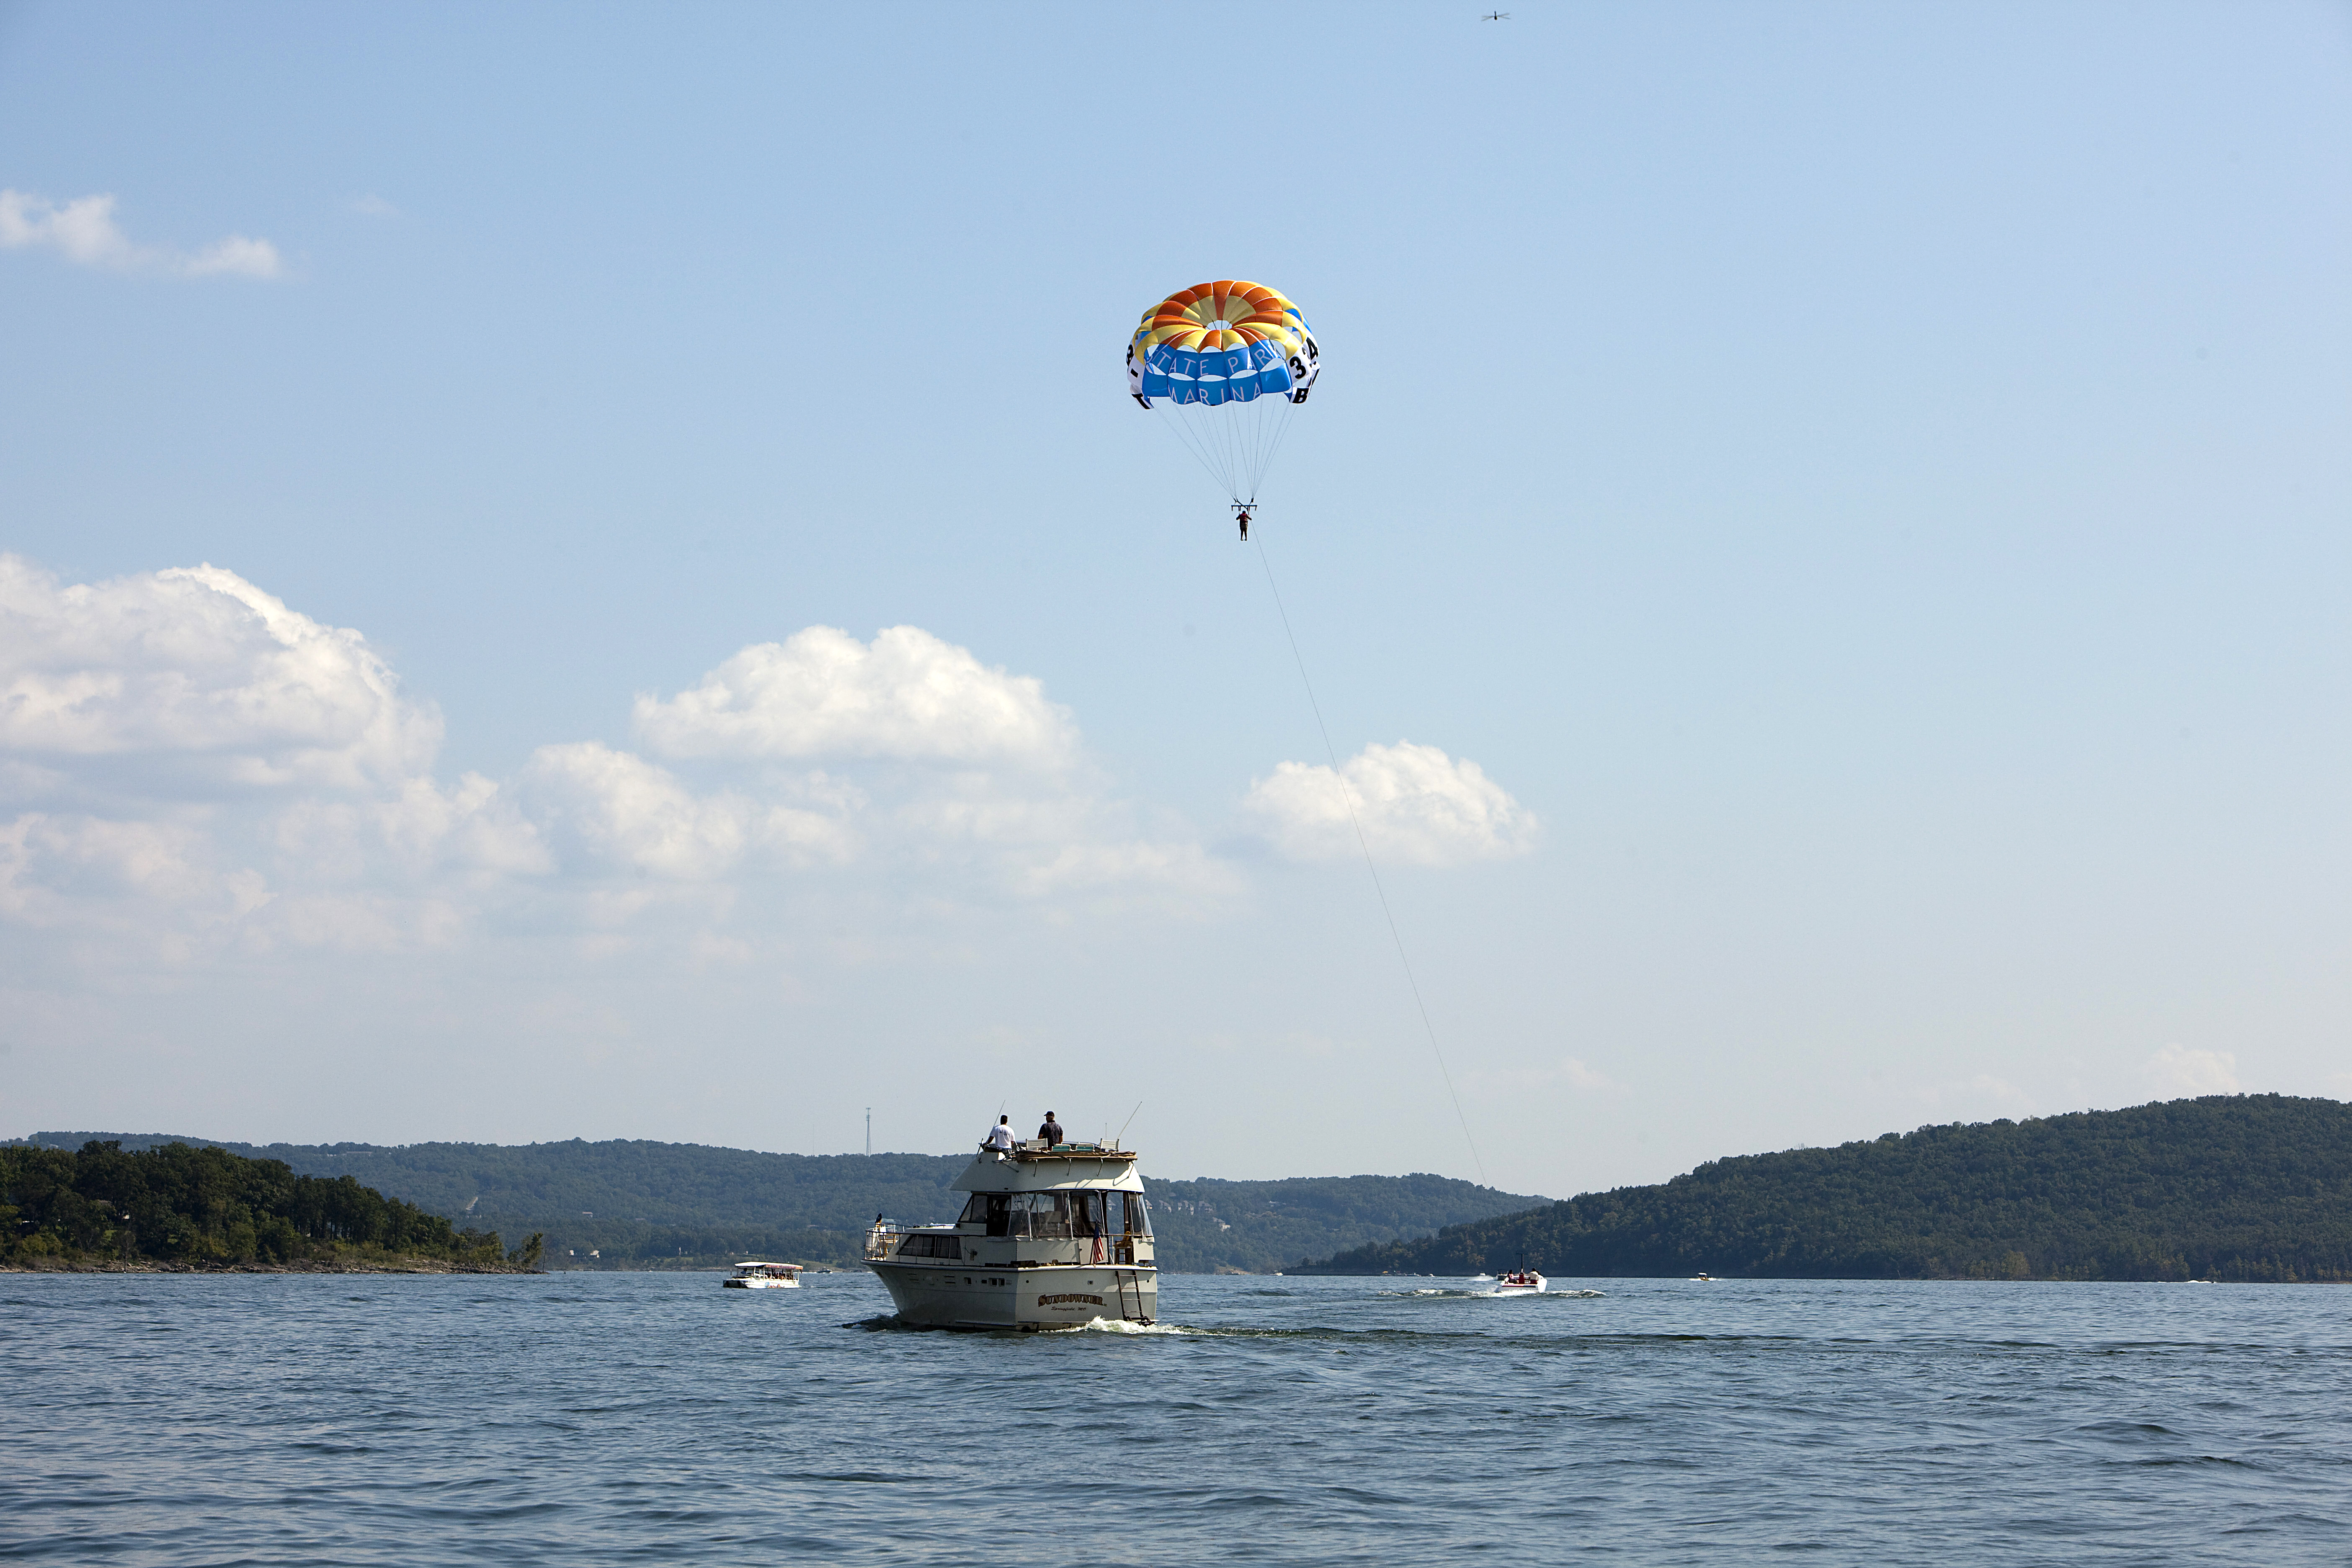 Nice Parasailing At Table Rock Lake Is A Fun Activity For Adventurers In The  Familyu2014even Those Of The Little Variety. American Parasail At State Park  Marina ...